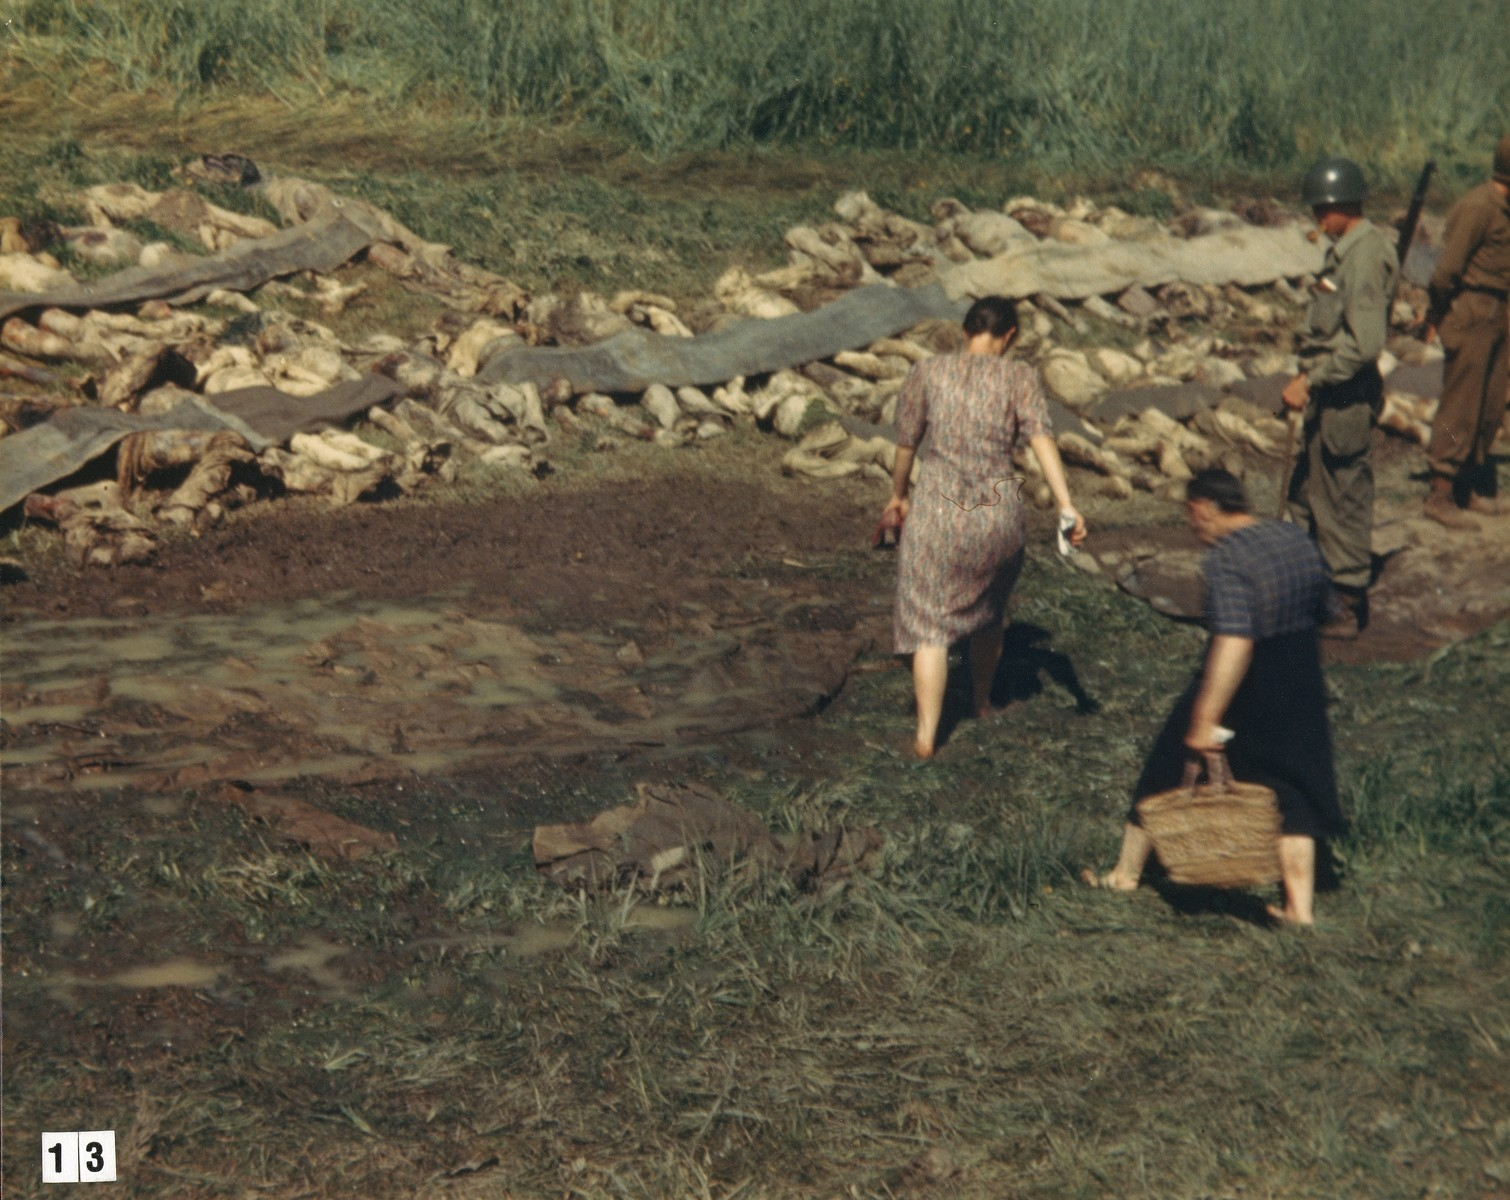 Bare-footed German women are forced by American soldiers to walk among the corpses of prisoners exhumed from a mass grave near Nammering.    [The women might have been forced to take off their shoes by U.S. troops so they would walk through the mud near the grave.]